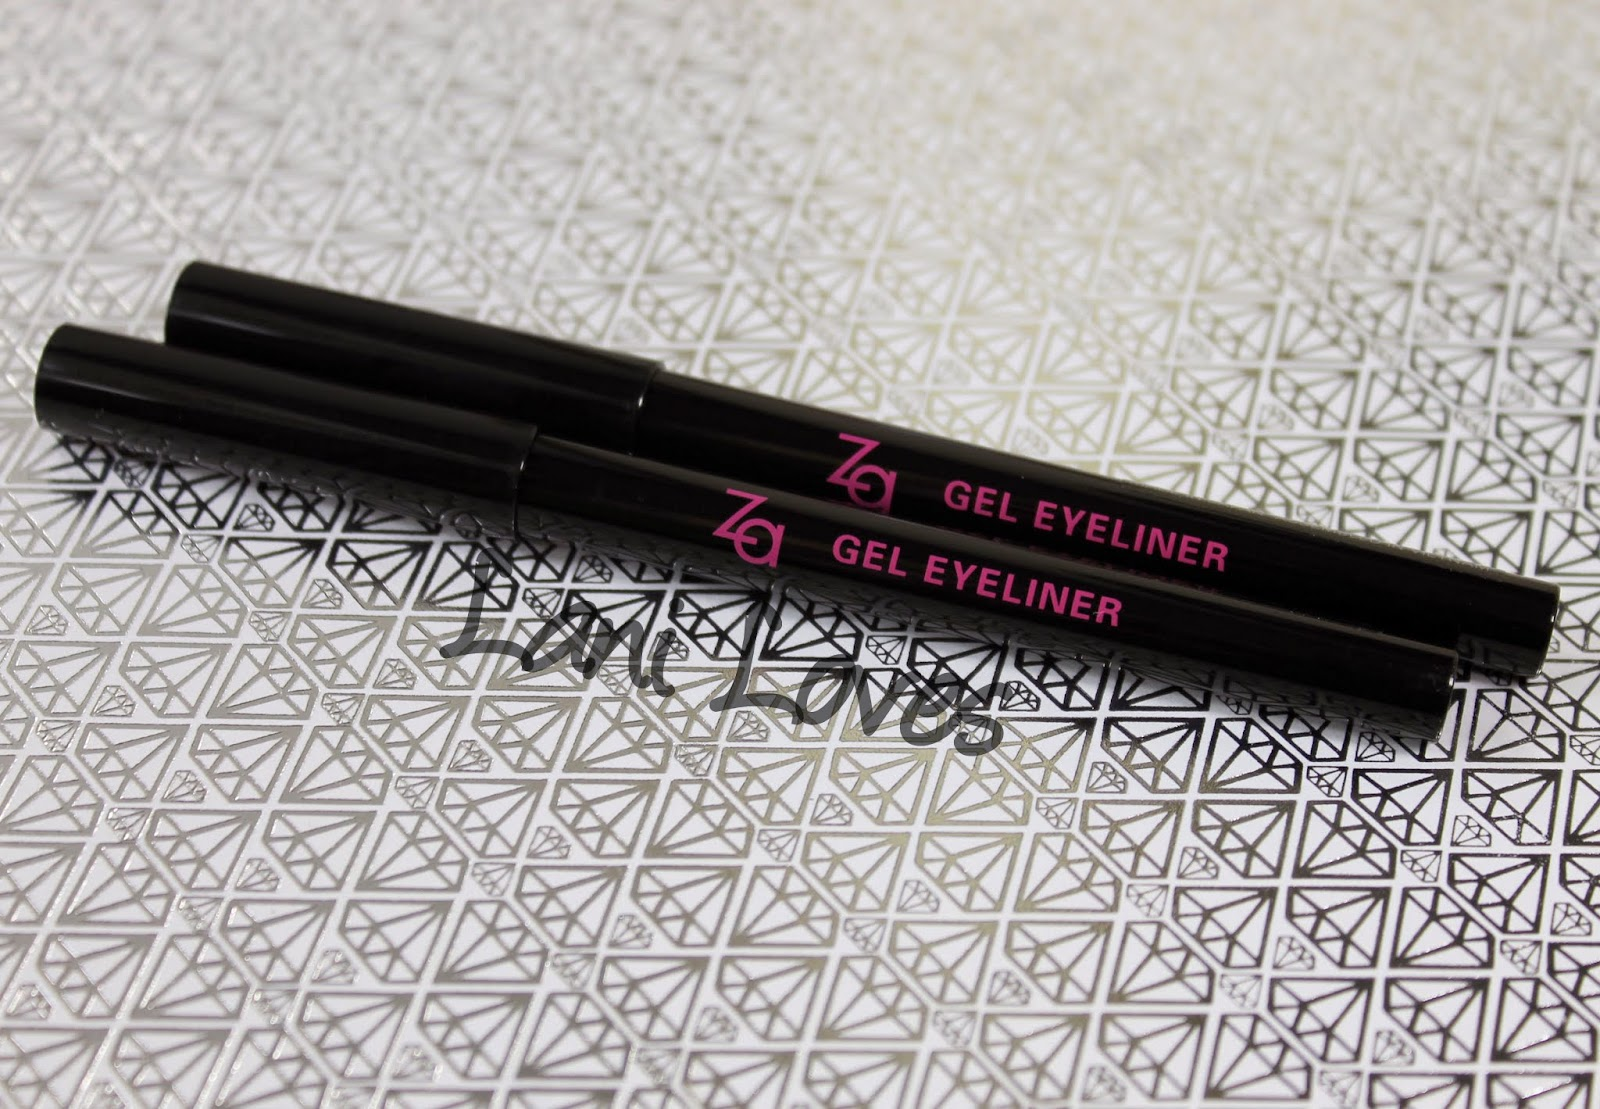 ZA Gel Eyeliner - BR669 Deep Brown and BK999 Real Black Swatches & Review